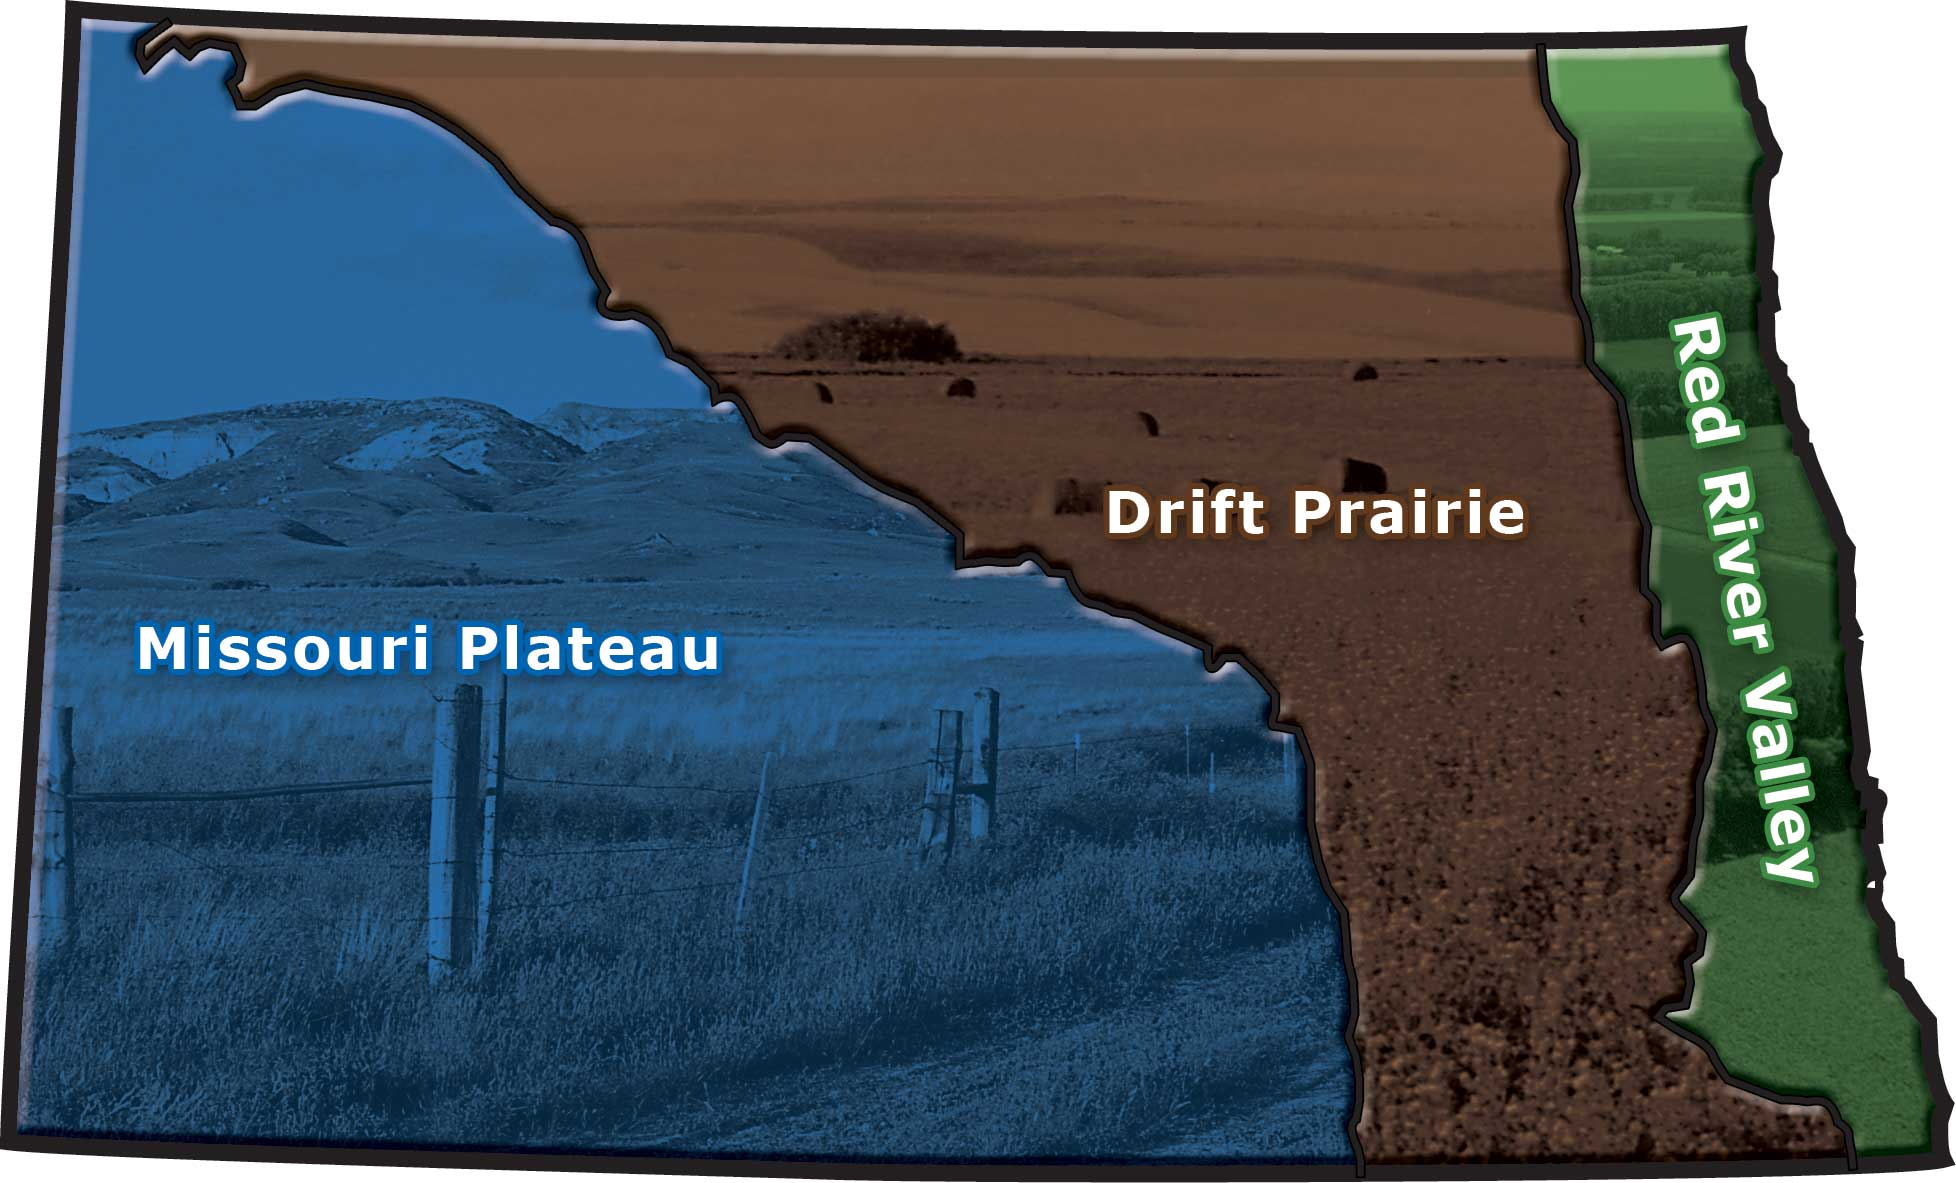 Figure 62. North Dakota has three main geographic regions